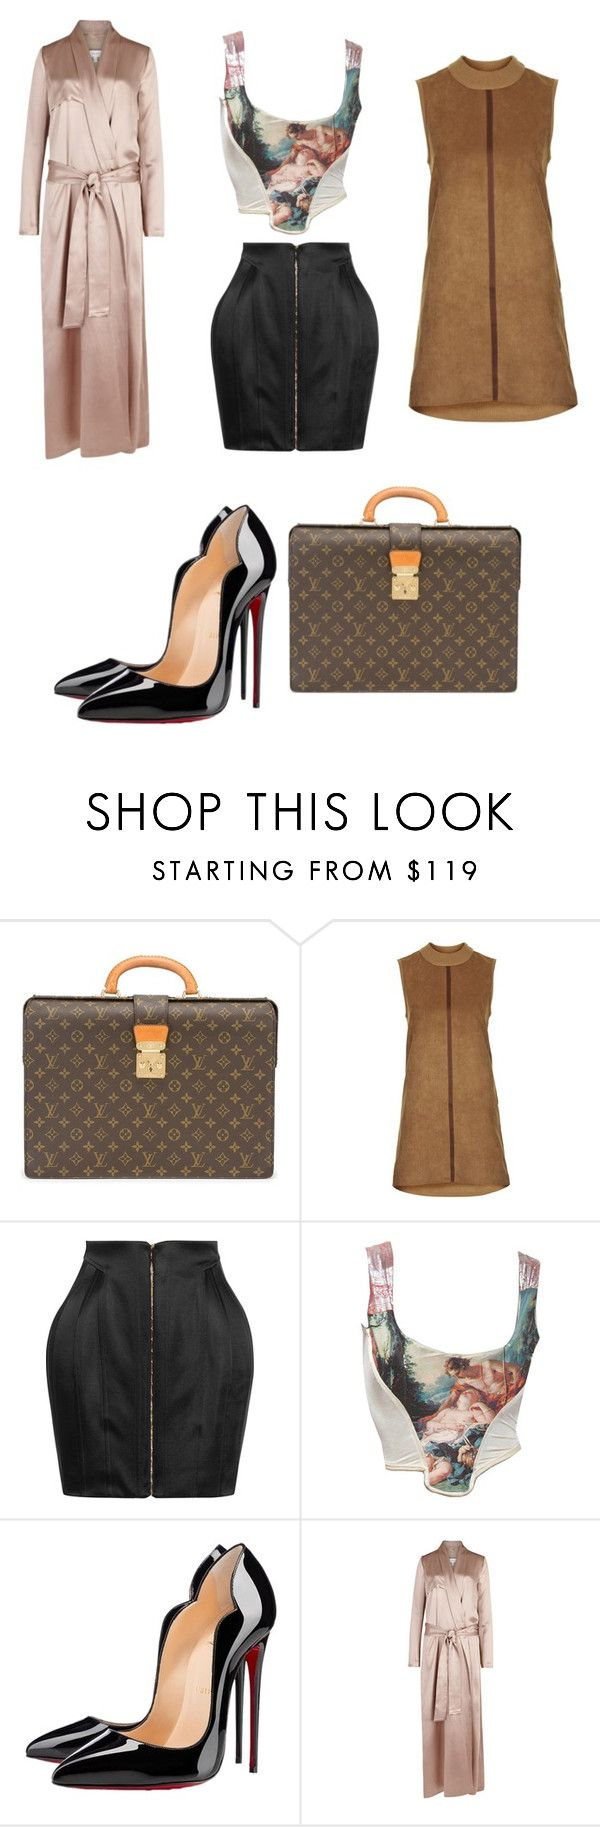 """Untitled #825"" by ednatchiwana ❤ liked on Polyvore featuring Louis Vuitton, Topshop, Balmain, Vivienne Westwood, Christian Louboutin and Galvan"